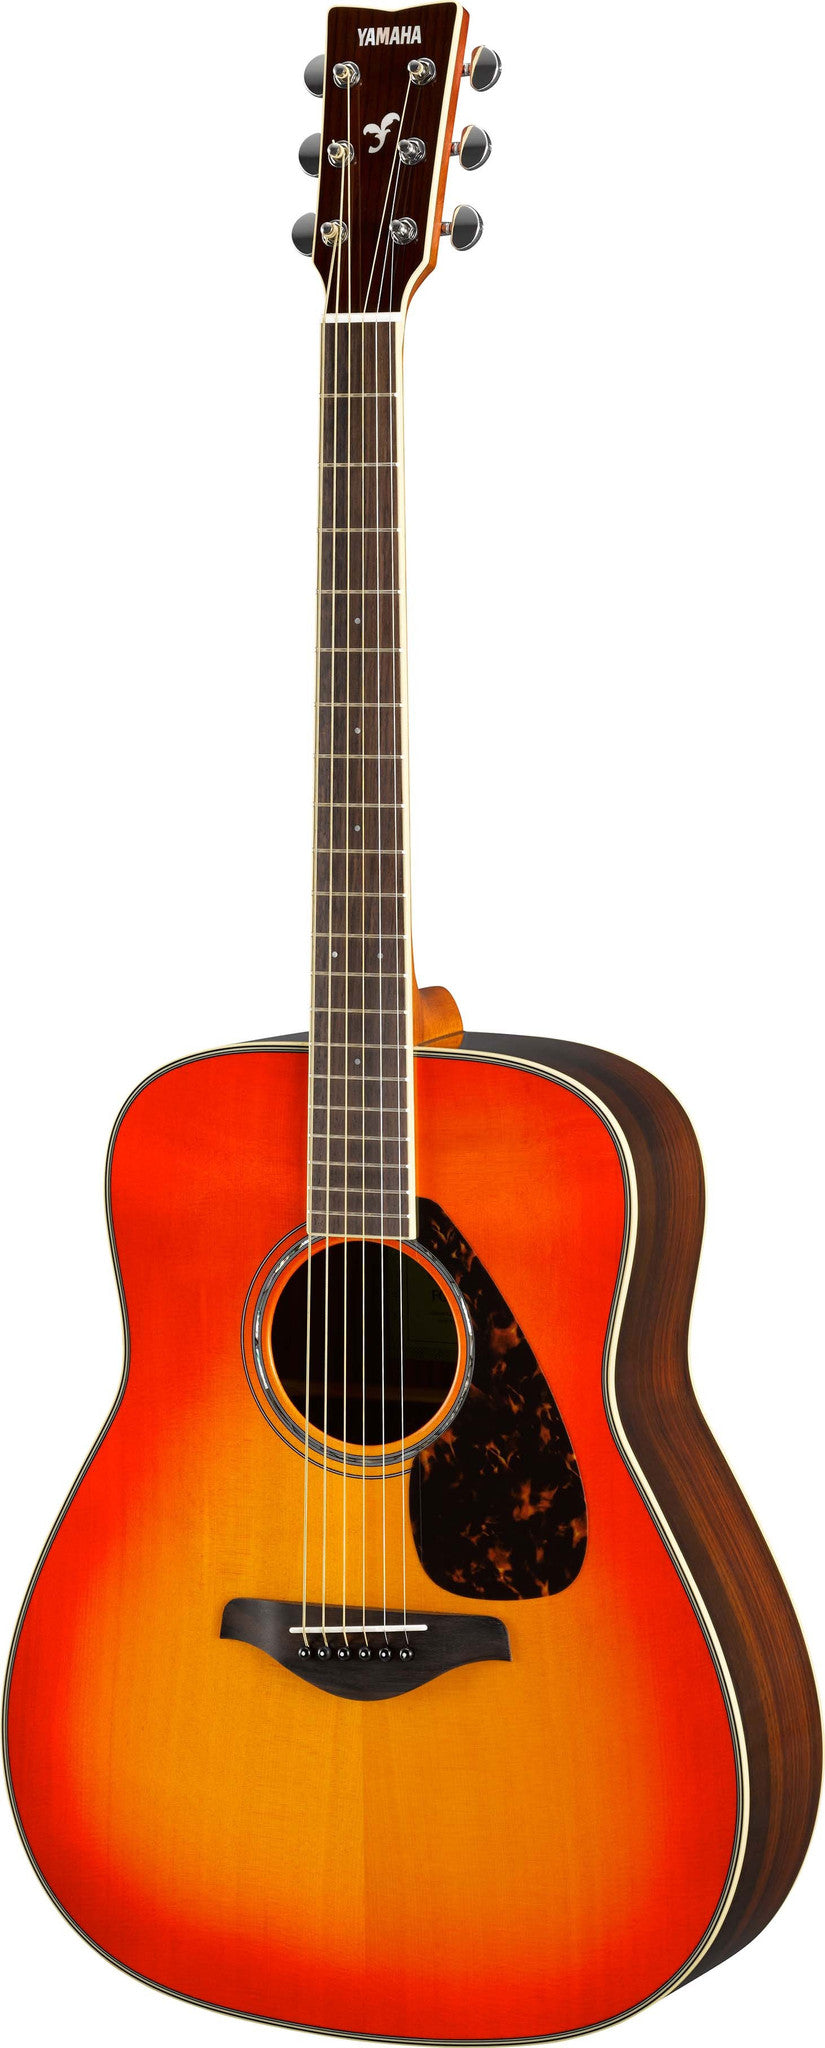 Yamaha FG830 Autumn Burst Dreadnought Acoustic Guitar Bundle